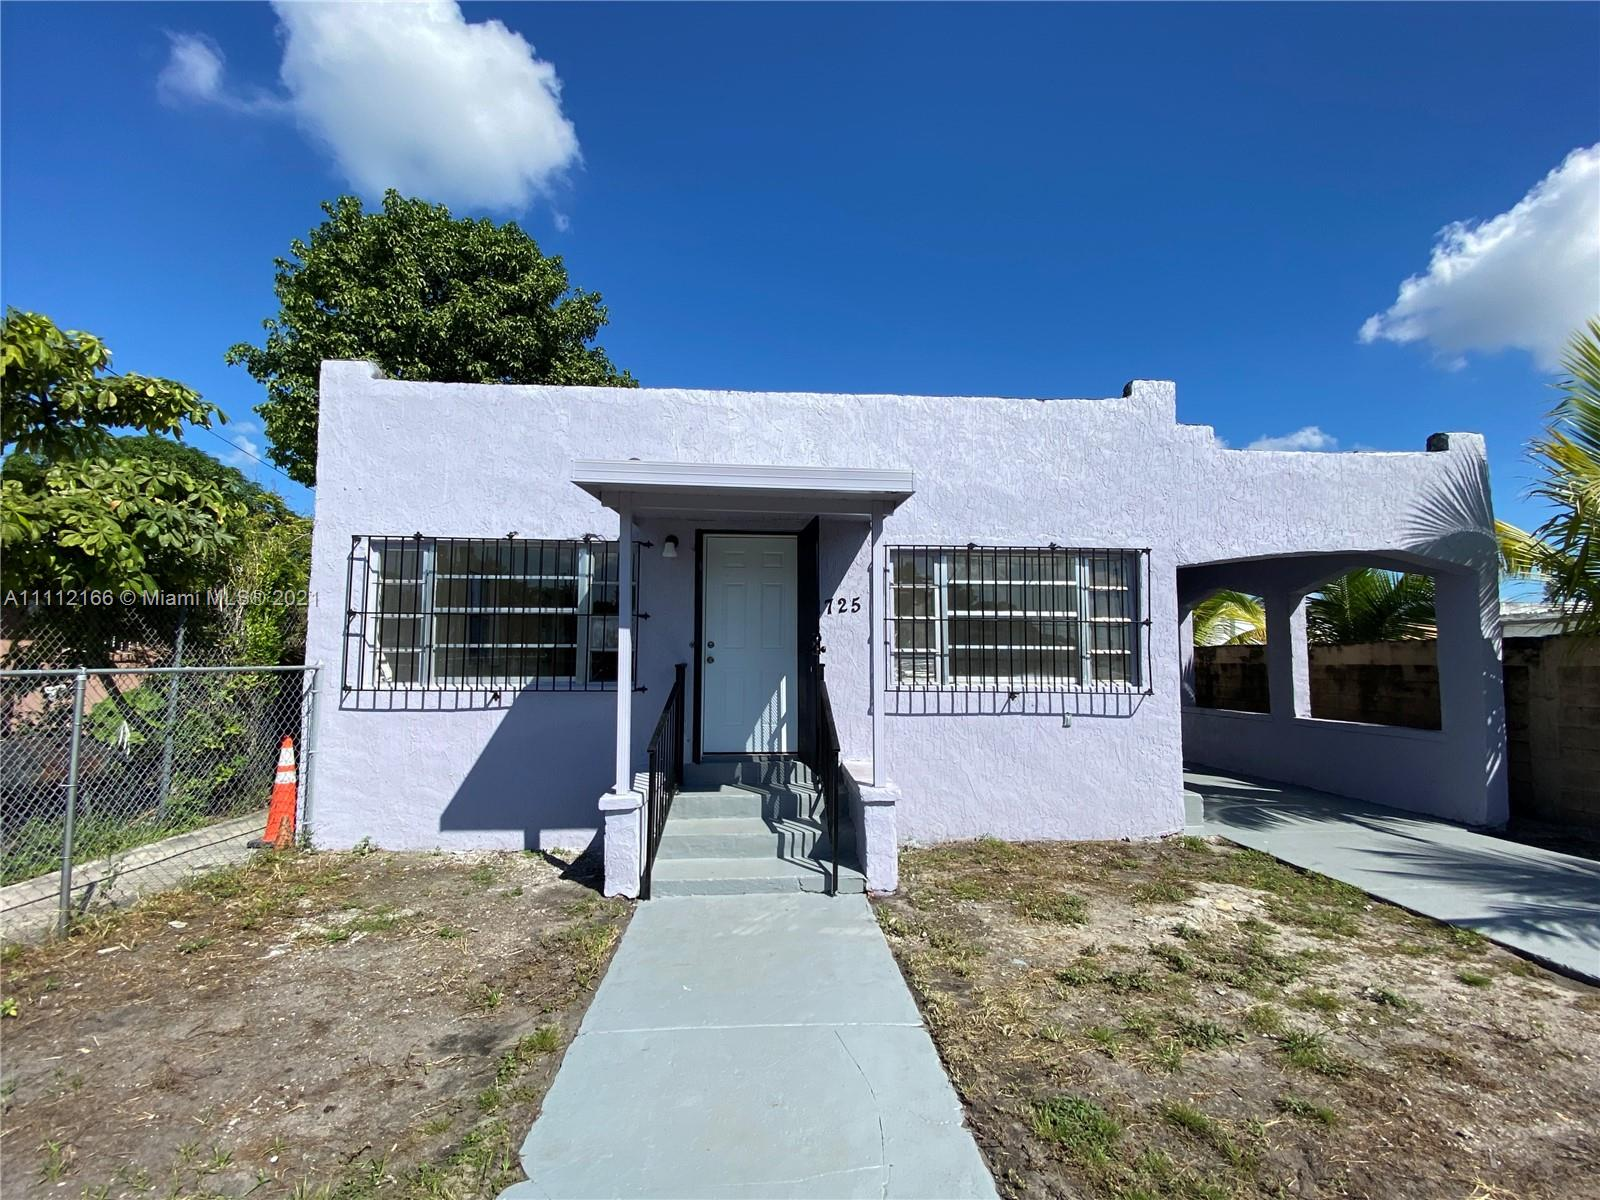 Single Family Home,For Rent,1725 NW 44th St, Miami, Florida 33142,Brickell,realty,broker,condos near me